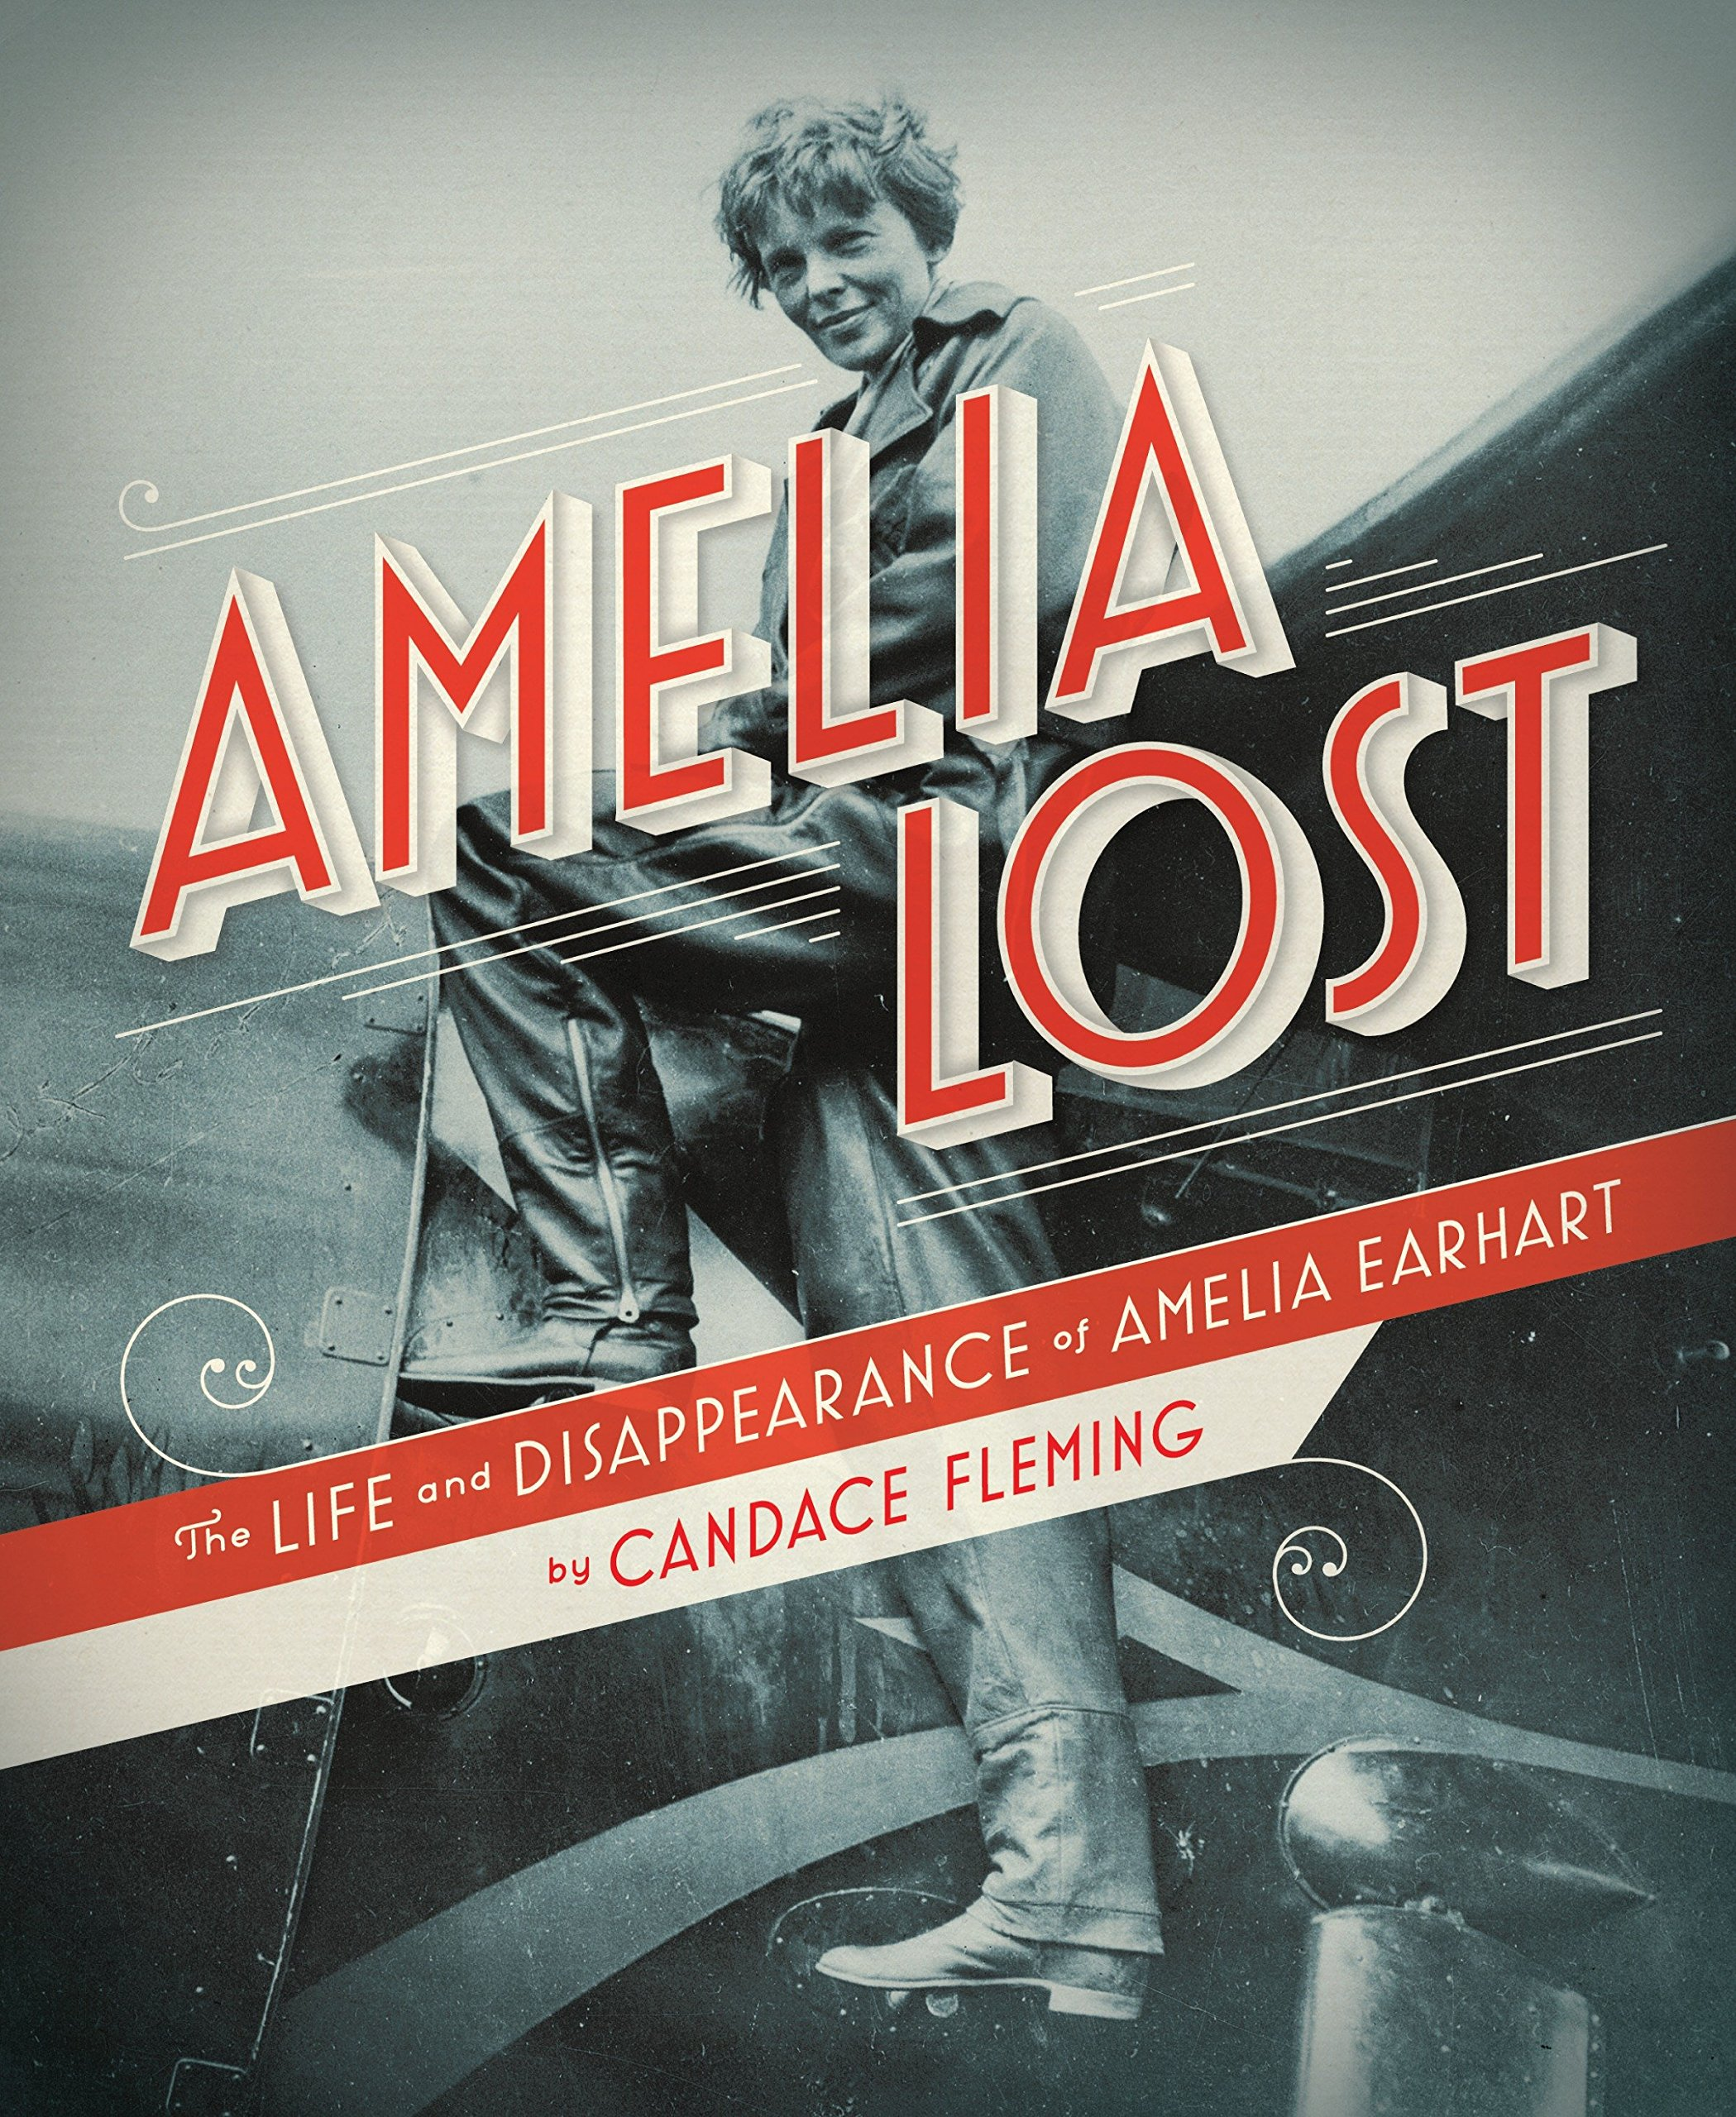 Image result for amelia lost fleming cover